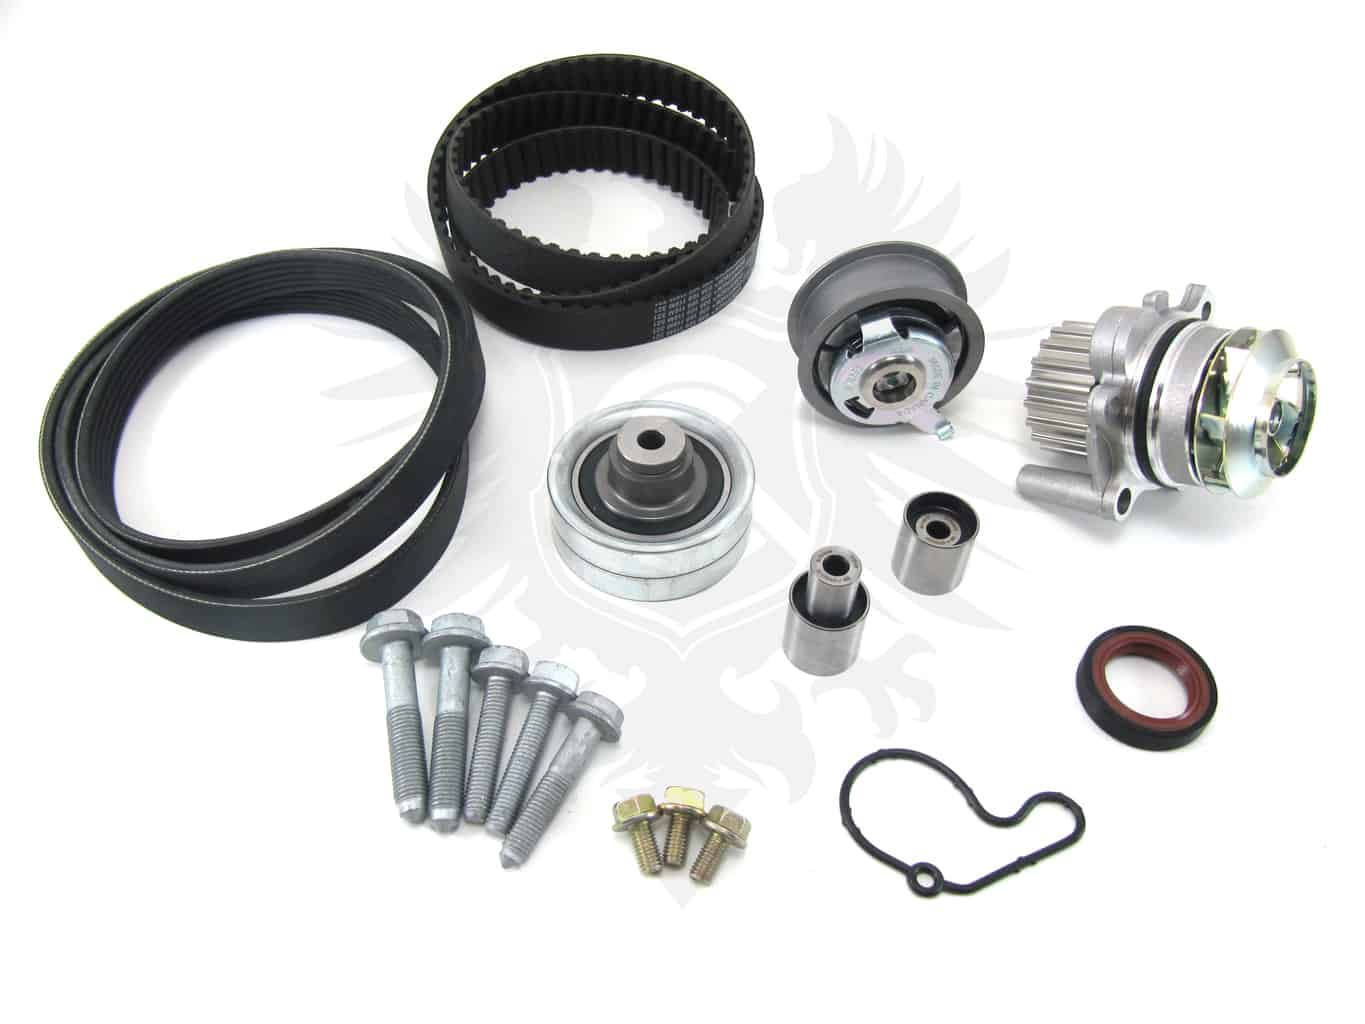 Timing Belt Kit Alh Deluxe Cascade German Parts Mk4 Vw Jetta